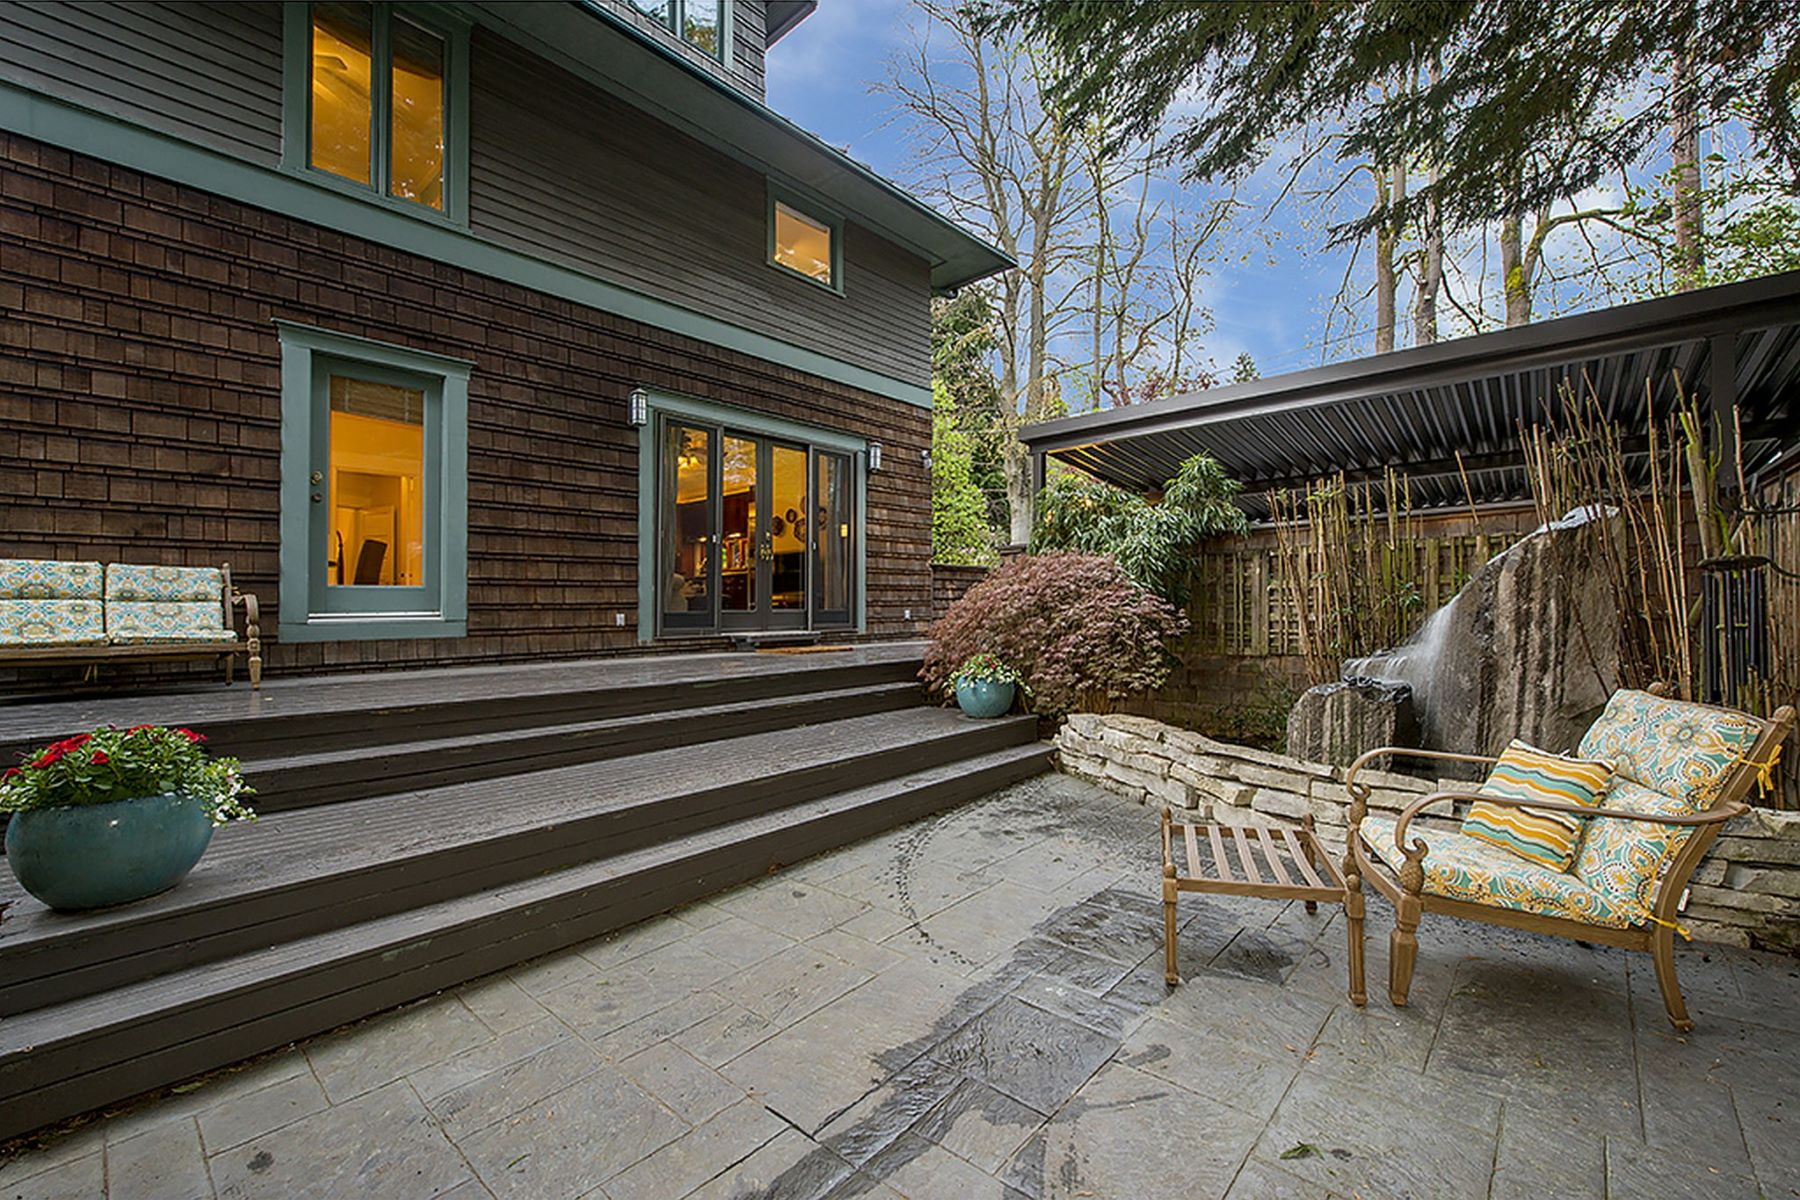 Additional photo for property listing at 1065 E Howe St  Seattle, Washington 98102 United States